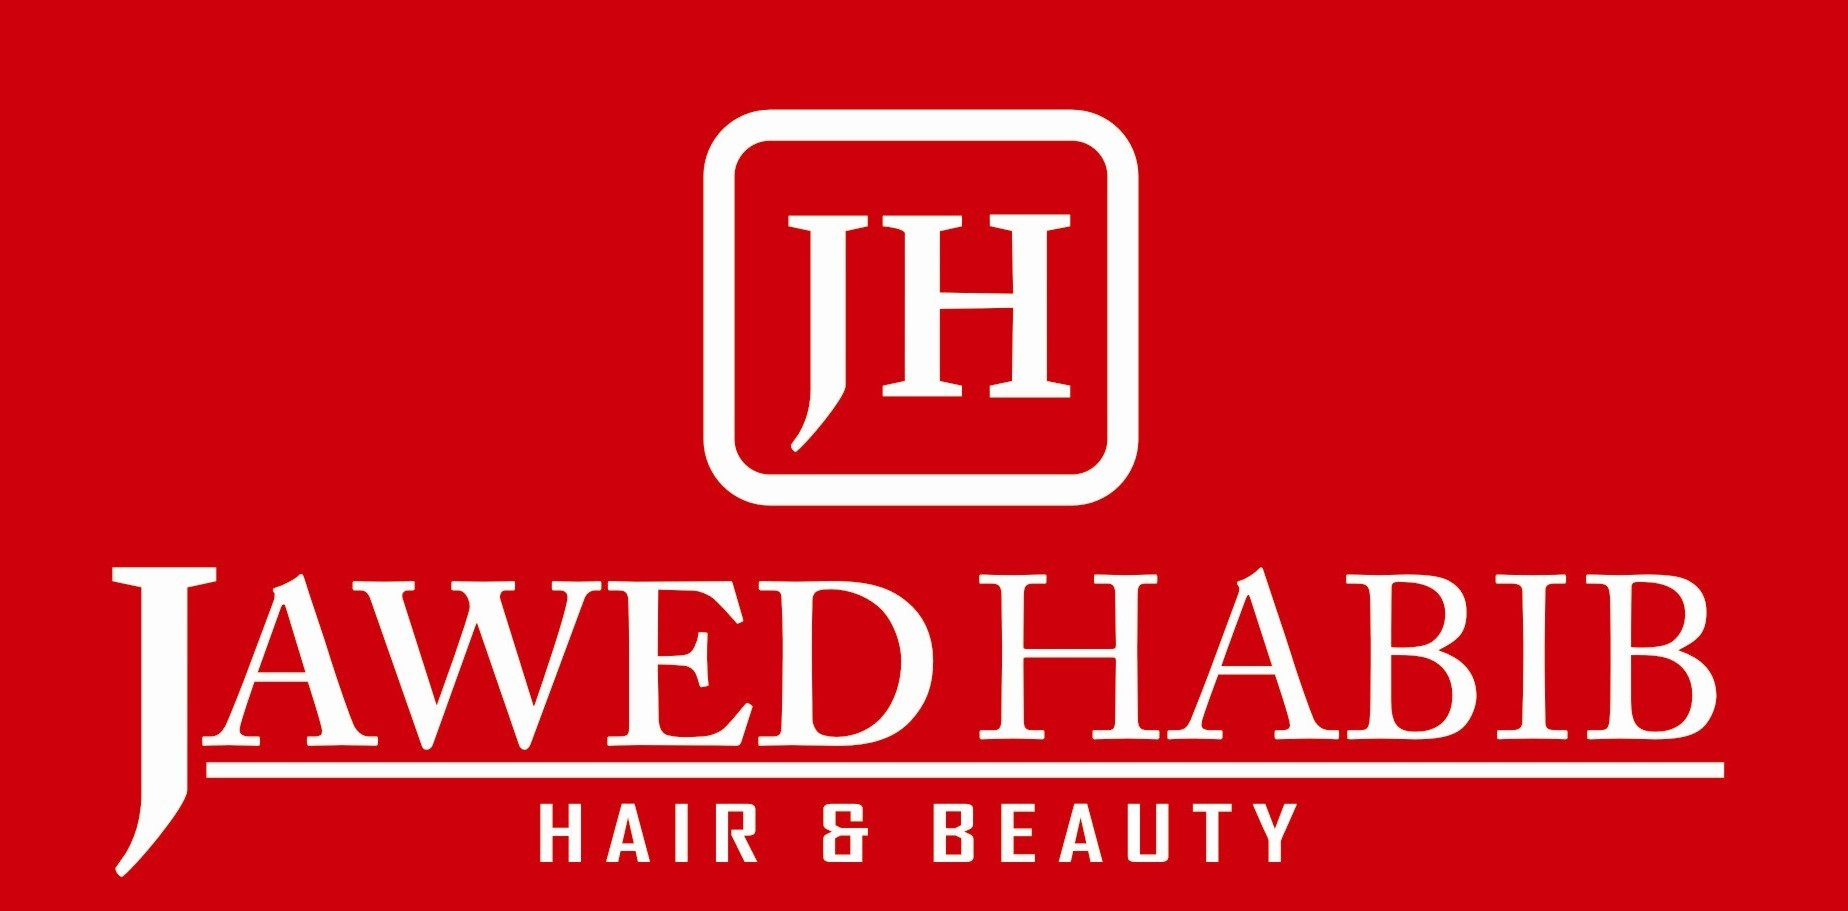 Jawed habib hair beauty salons hitech city hyderabad for Page 3 salon hyderabad